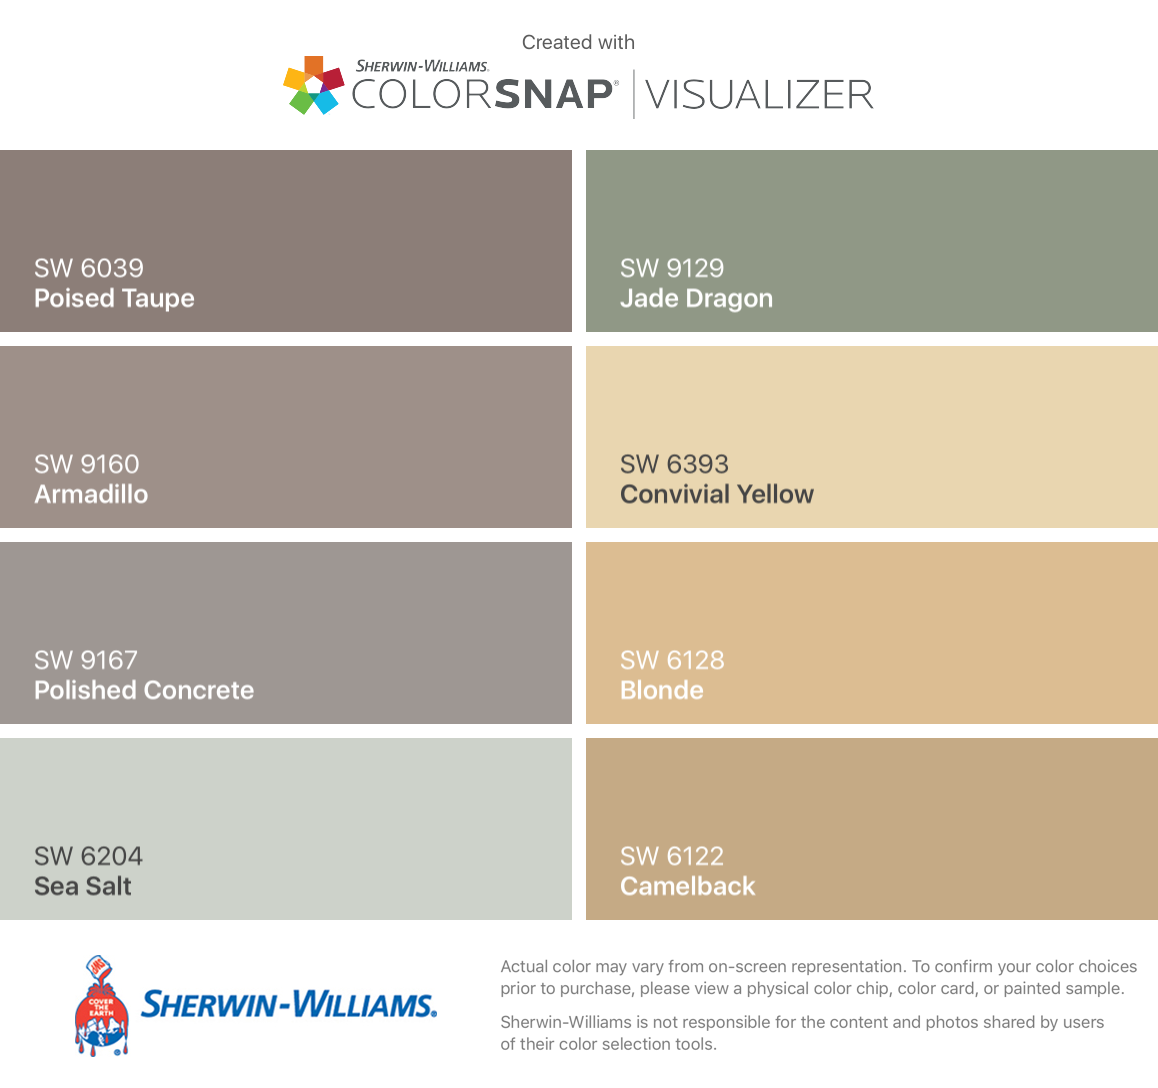 I Found These Colors With Colorsnap Visualizer For Iphone By Sherwin Williams Poised Taupe Sw 6039 Armadillo 9160 Polished Concrete 9167